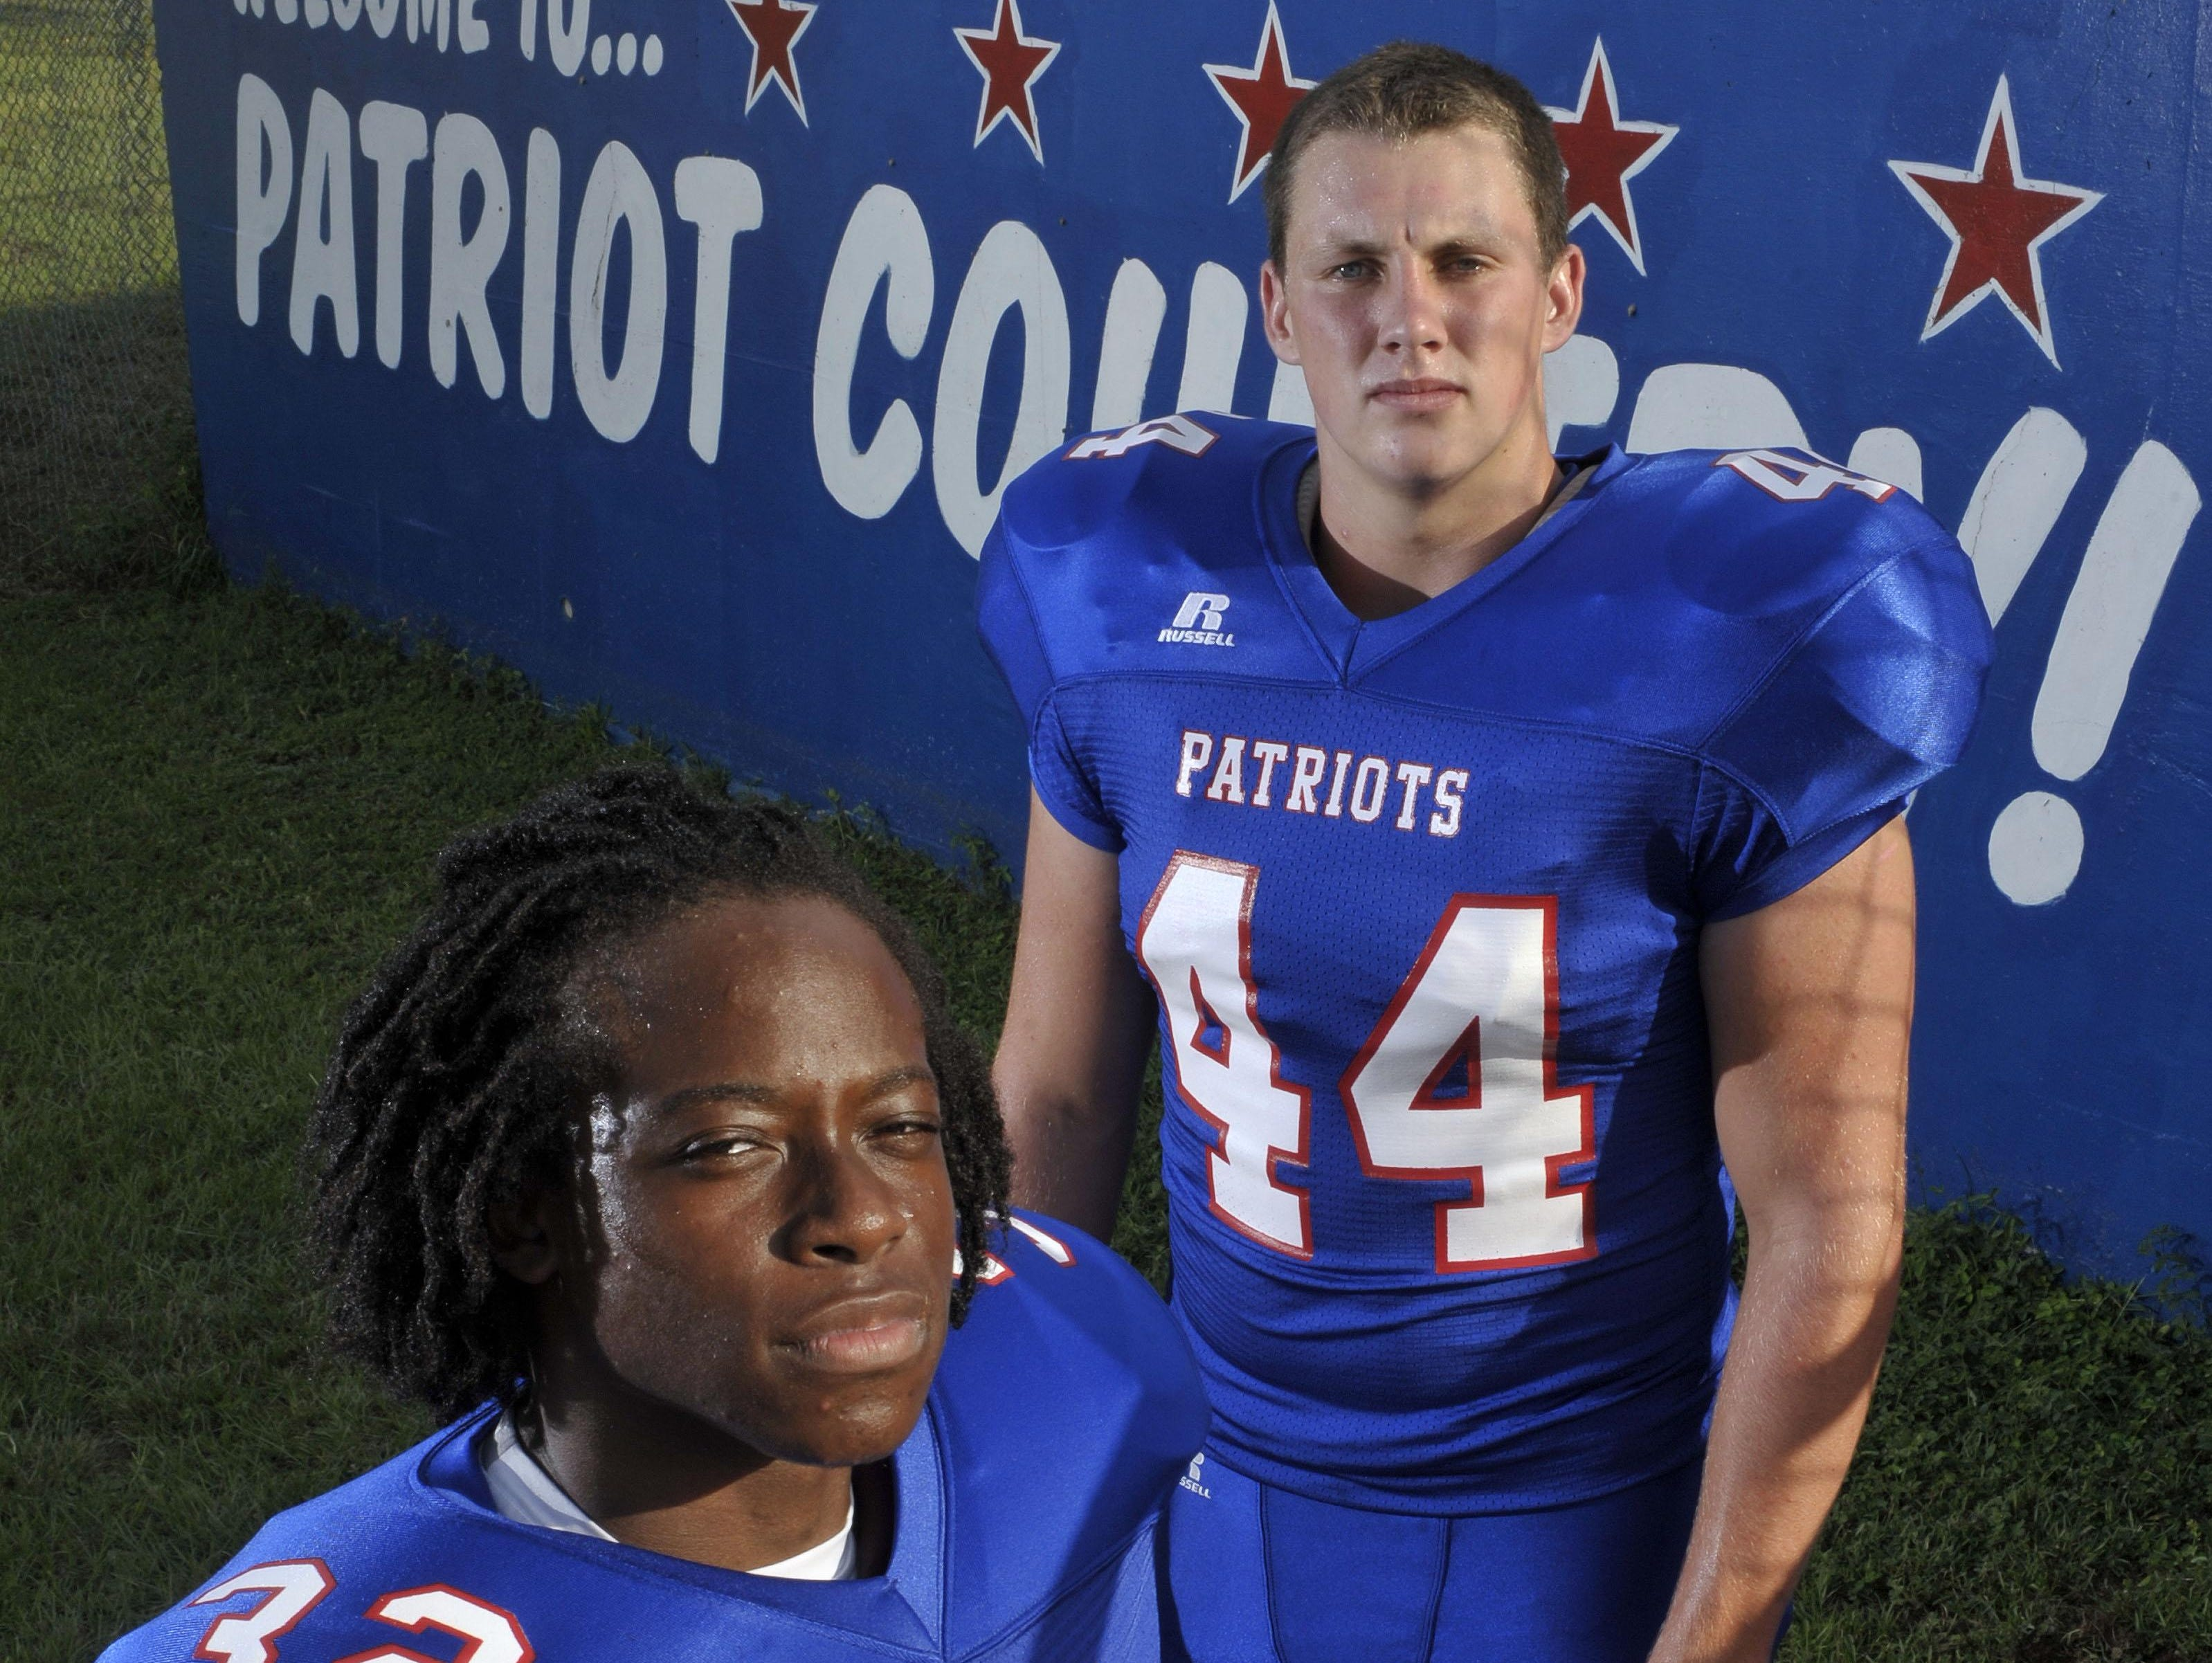 Pace High leaders Anthony Johnson, Jr. (No. 32) and Brice Peaden (No. 44) are ready to lead the Patriots into the 2015 season.